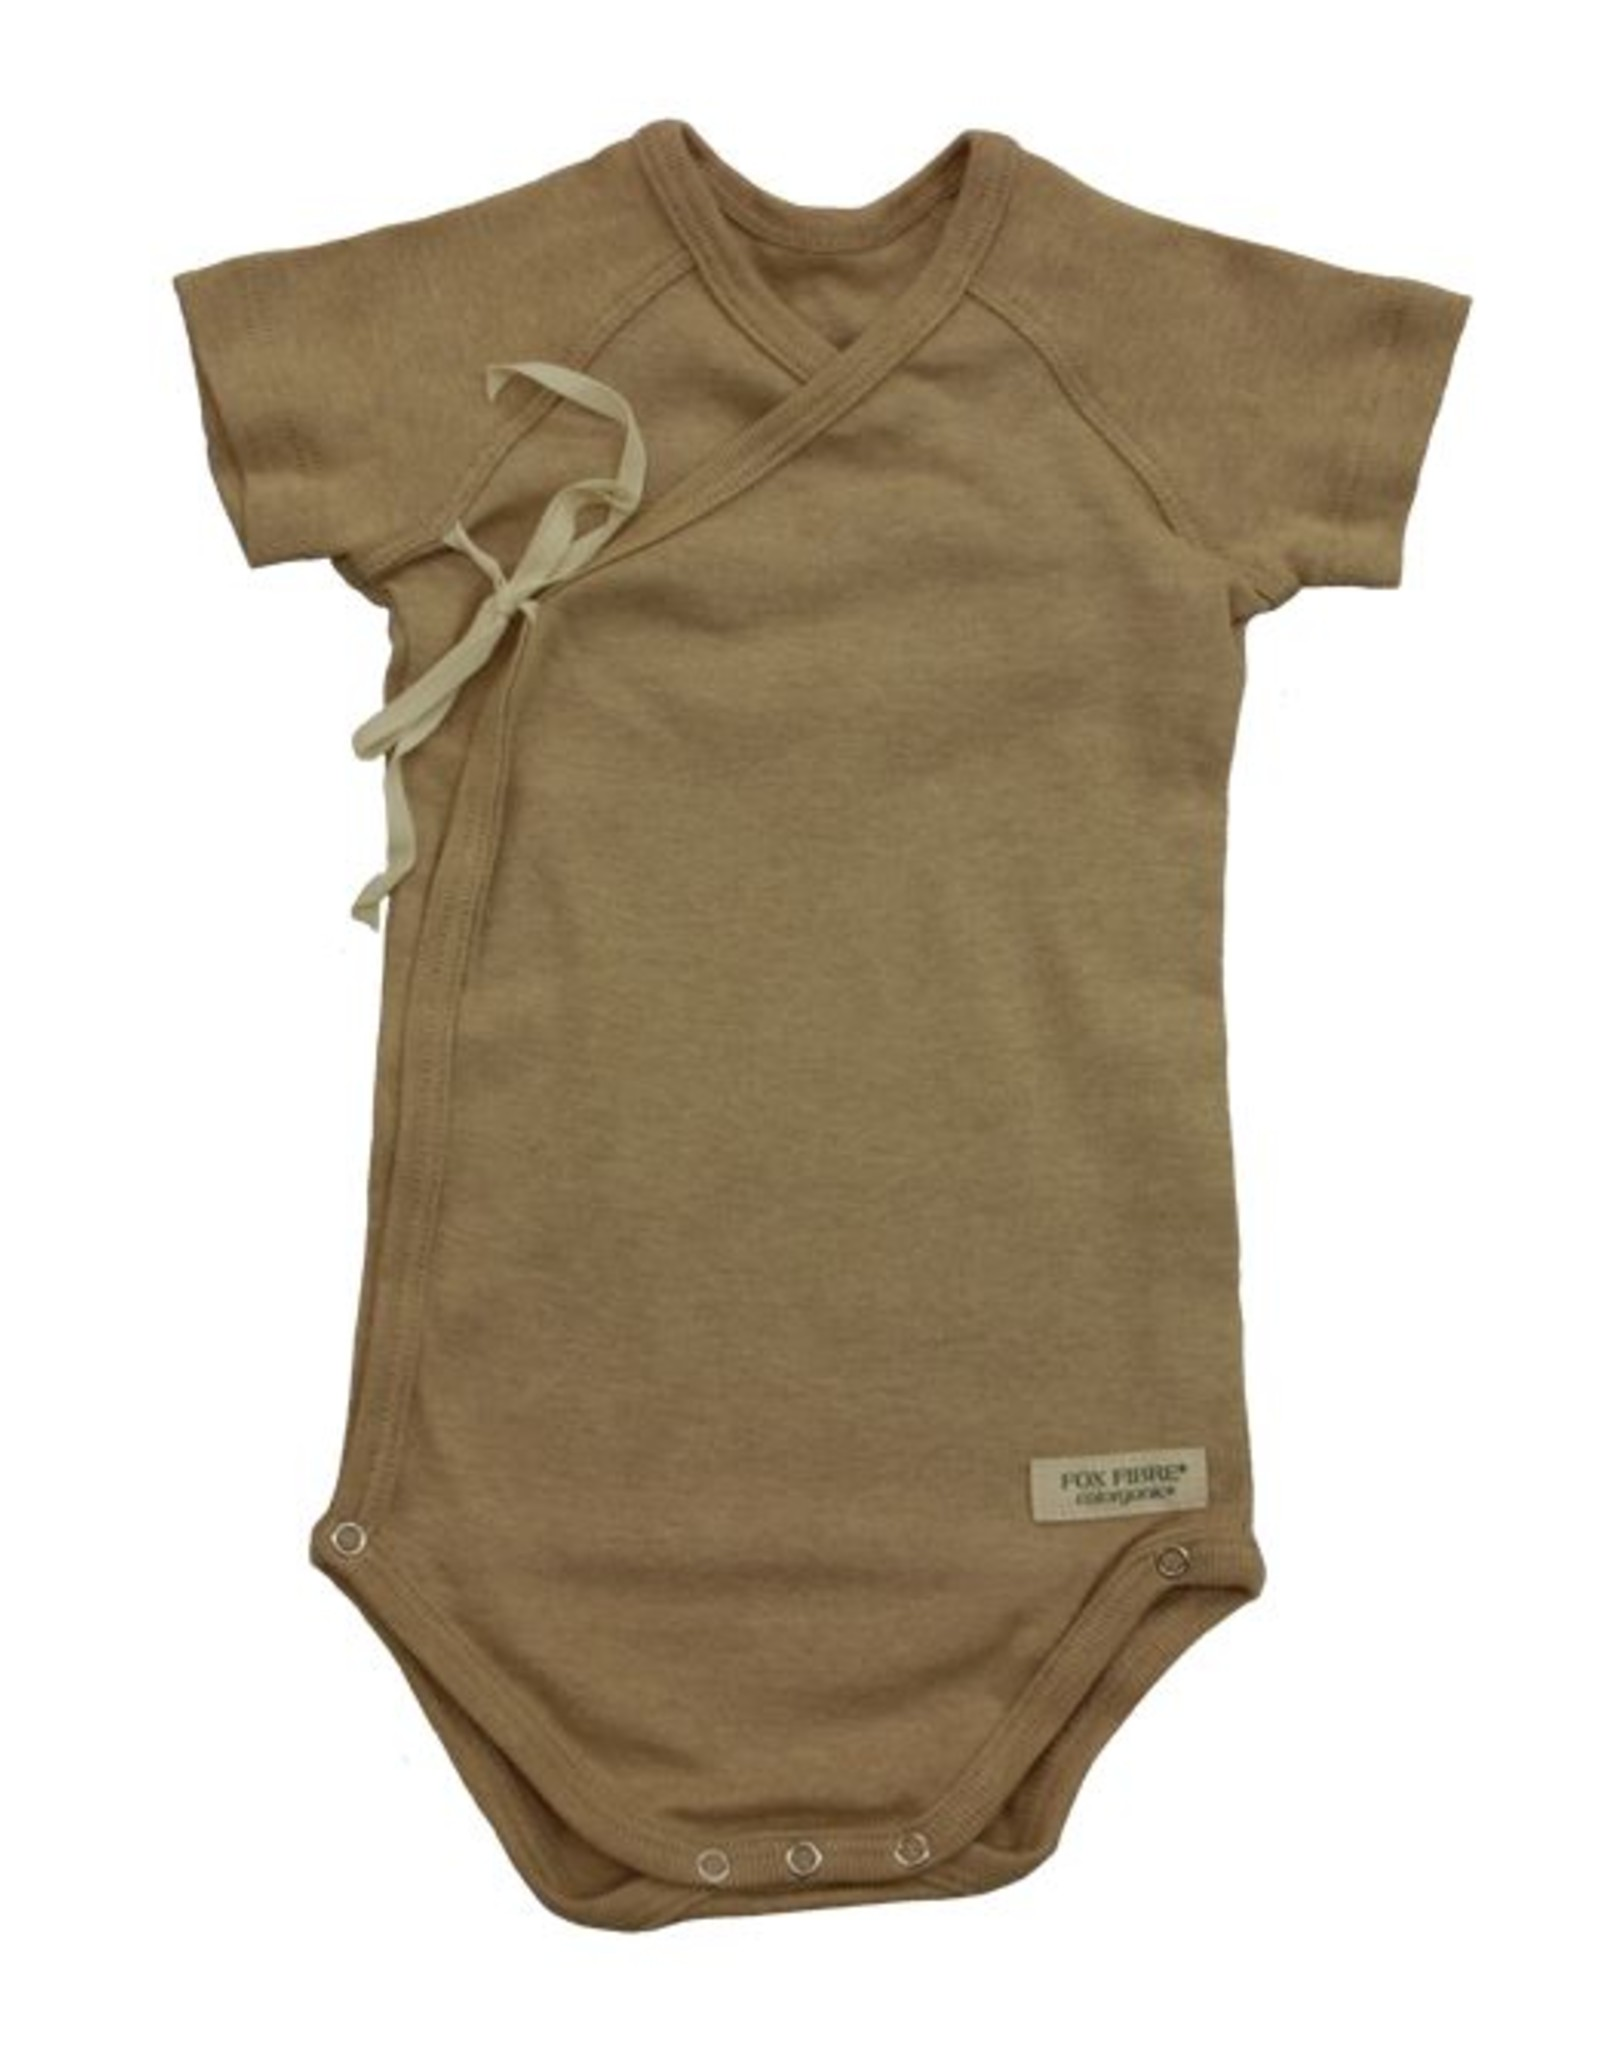 Baby body crossed with short sleeve.åÊåÊ sizes 1, 3, 6 months.